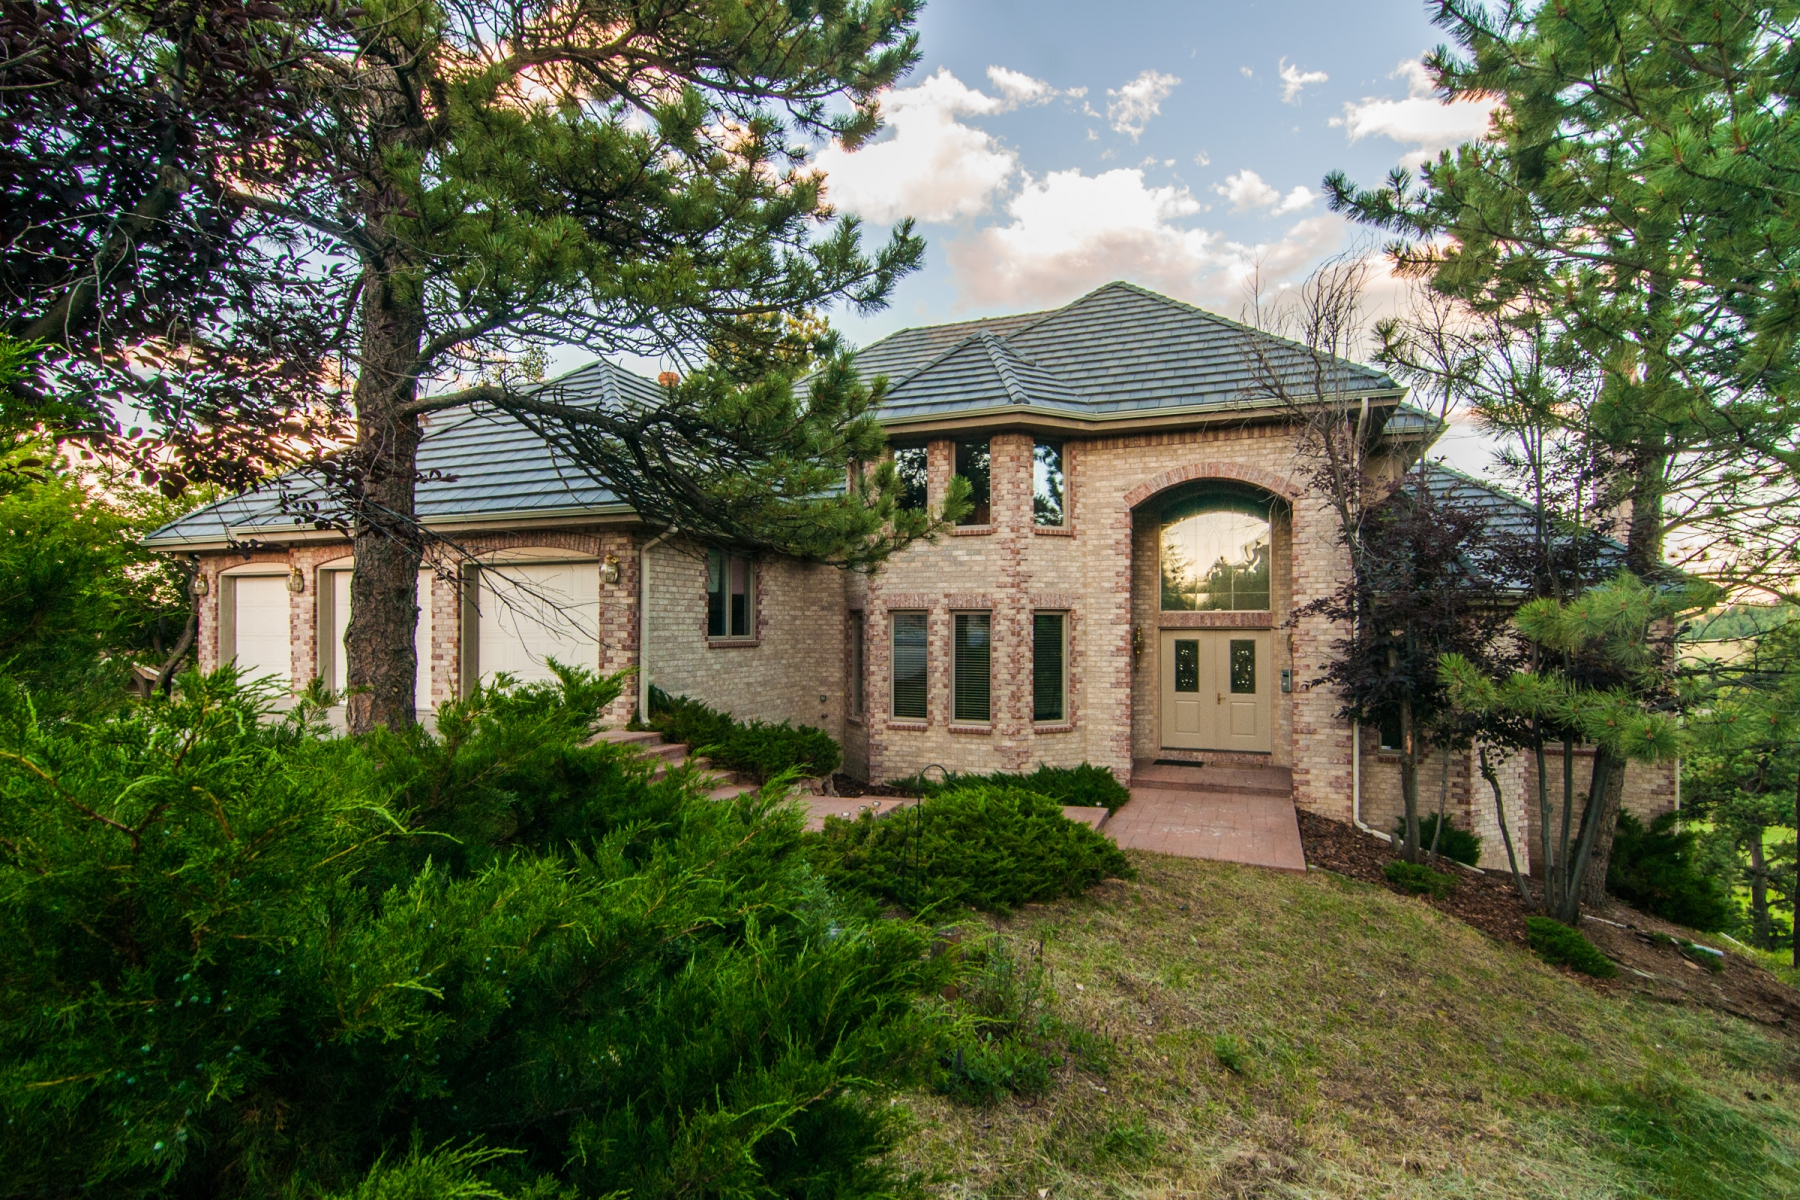 Single Family Home for Sale at Large, Light Home with Views 840 Kachina Circle Golden, Colorado 80401 United States